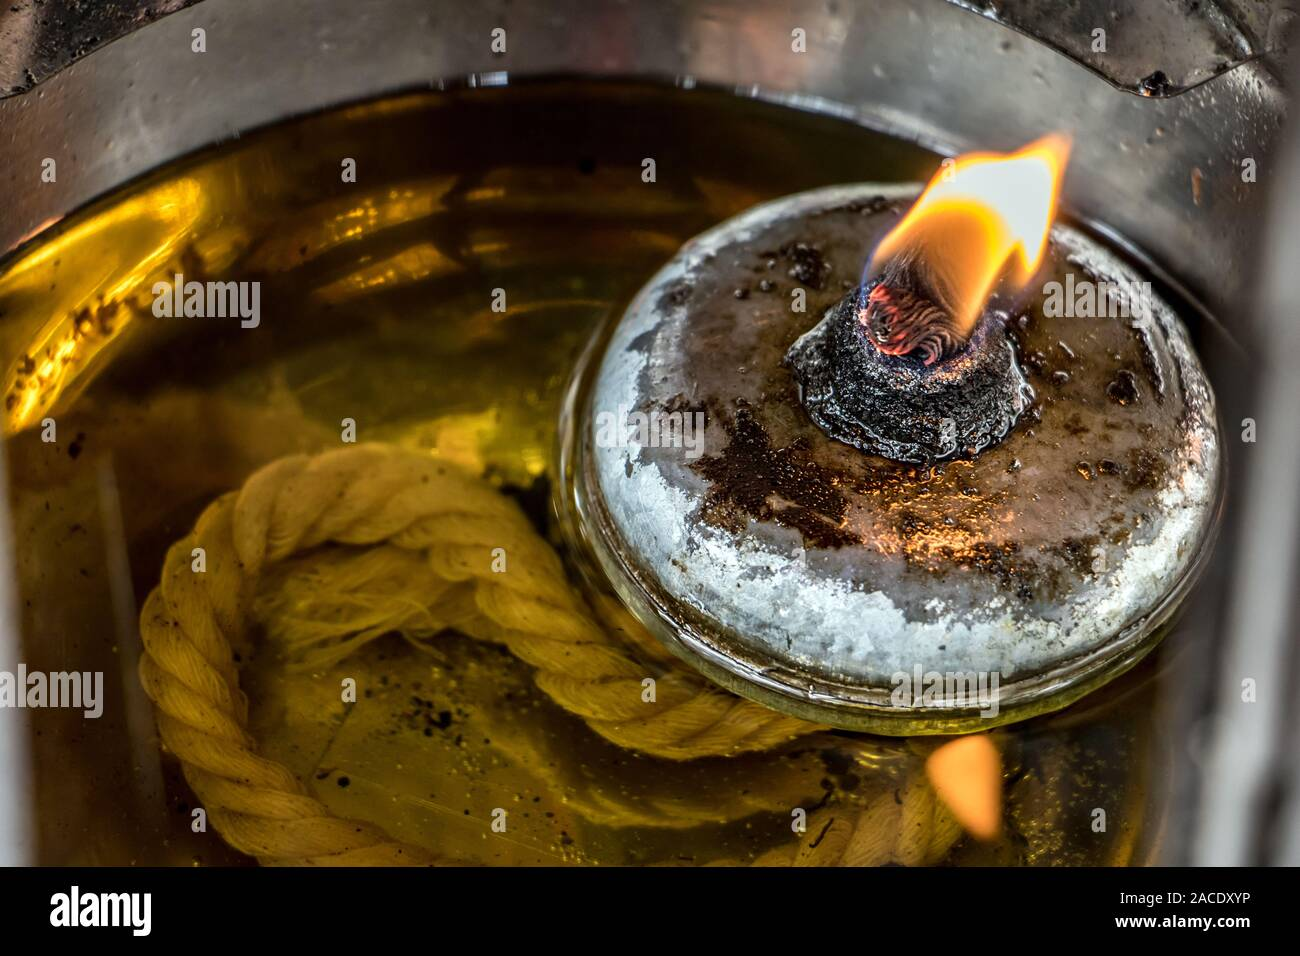 Picture of: Fire In Oil Lantern Lamp Close Up A Wick With A Flame Swims In Oil Inside A Lamp Stock Photo Alamy